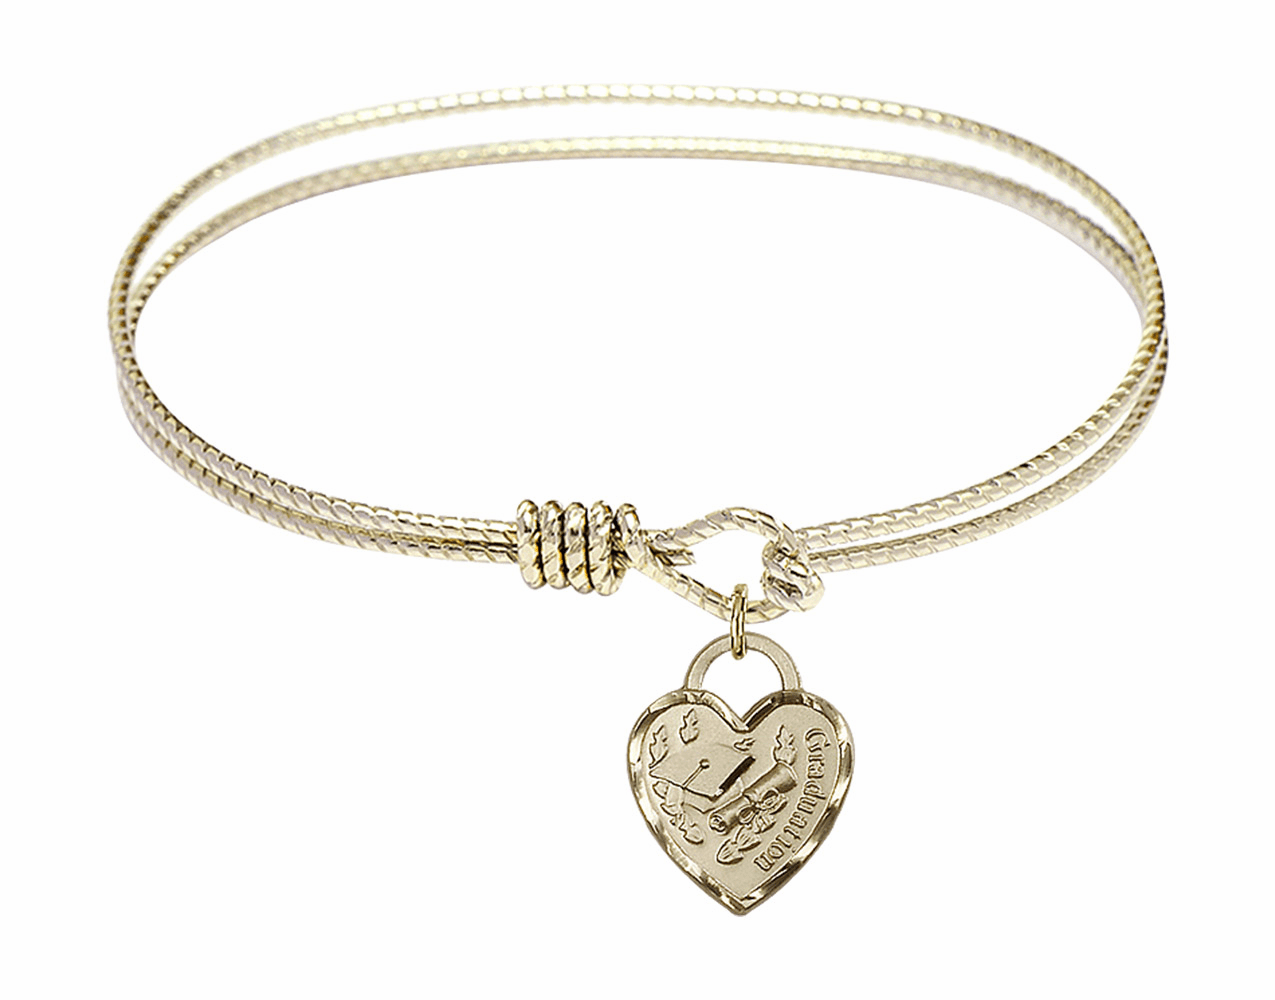 Round Twist Eye Hook Bangle Bracelet w/Graduation Heart Charm by Bliss Mfg